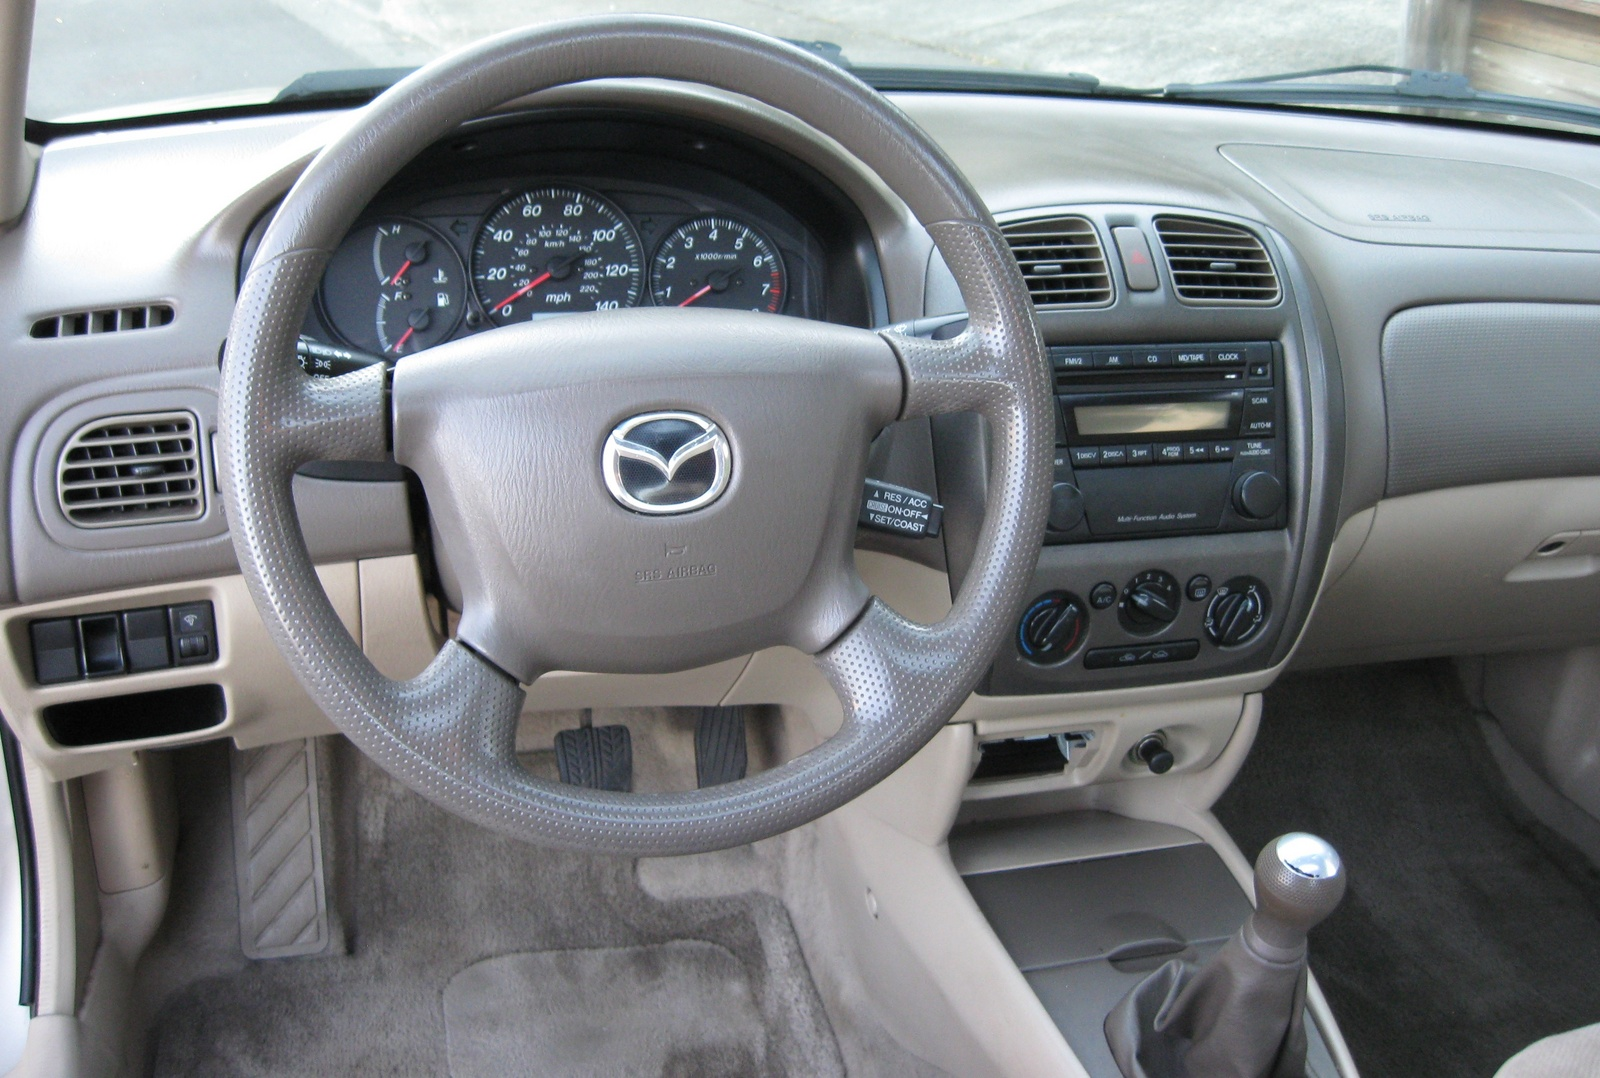 Picture of 2001 Mazda Protege LX 2.0, interior